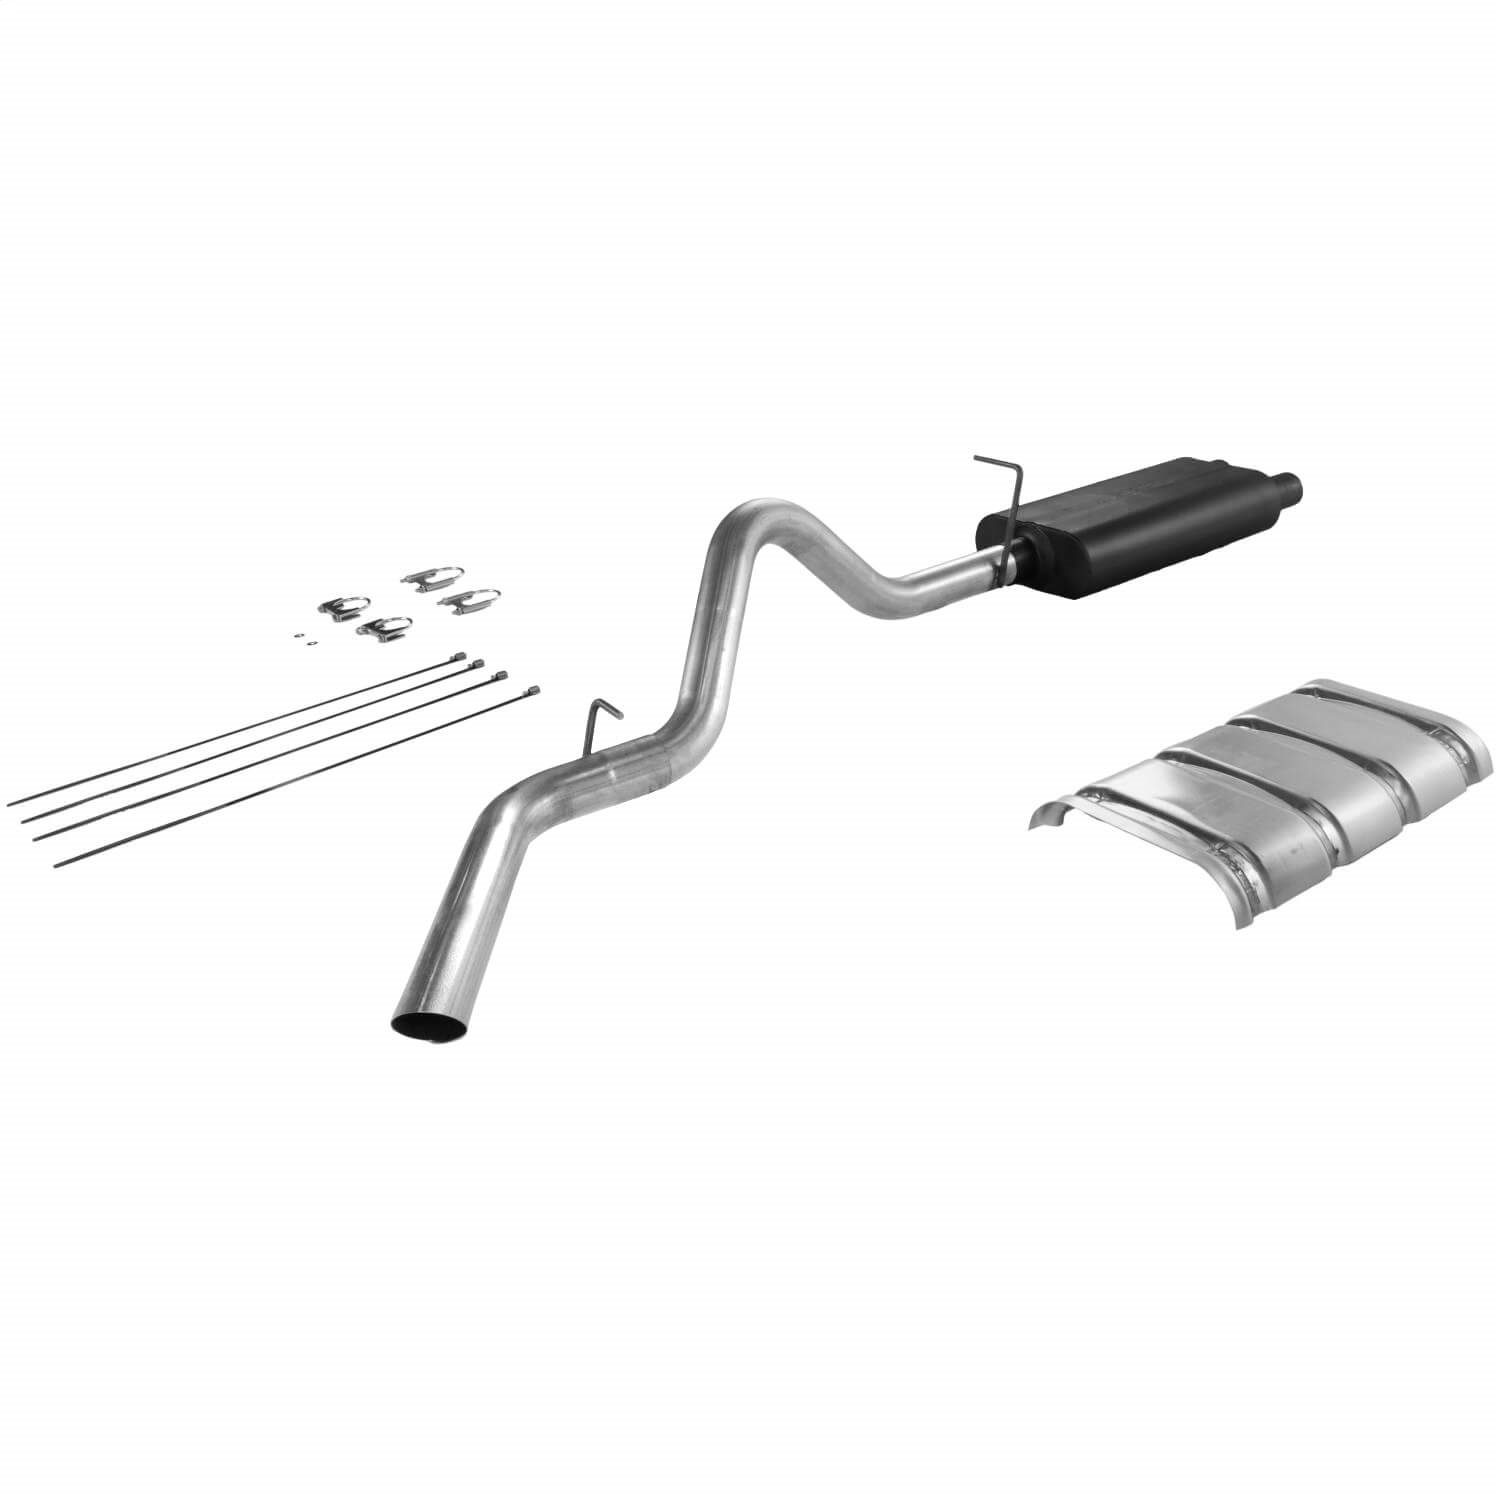 Flowmaster 17224 American Thunder Cat Back Exhaust System